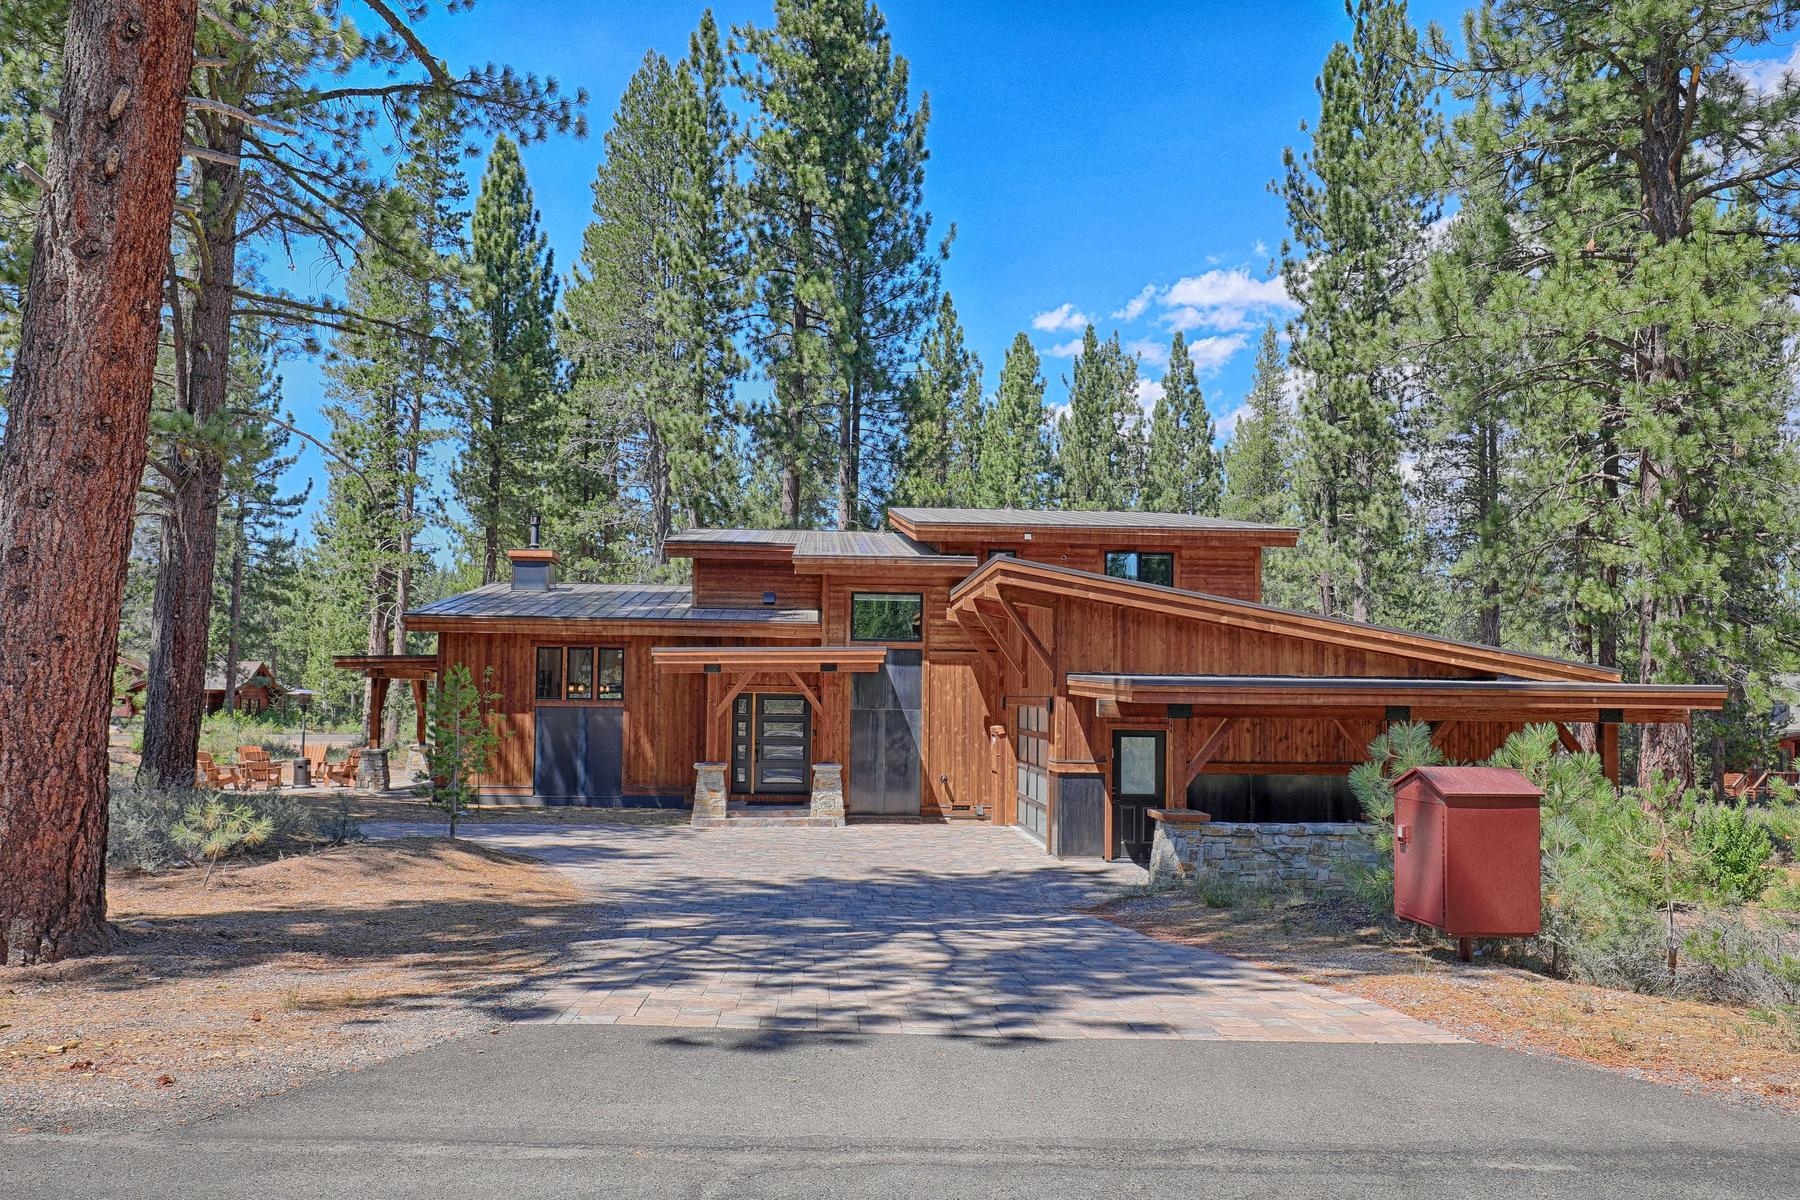 Single Family Homes for Active at 11090 Henness Road, Truckee, Ca 96161 11090 Henness Road Truckee, California 96161 United States